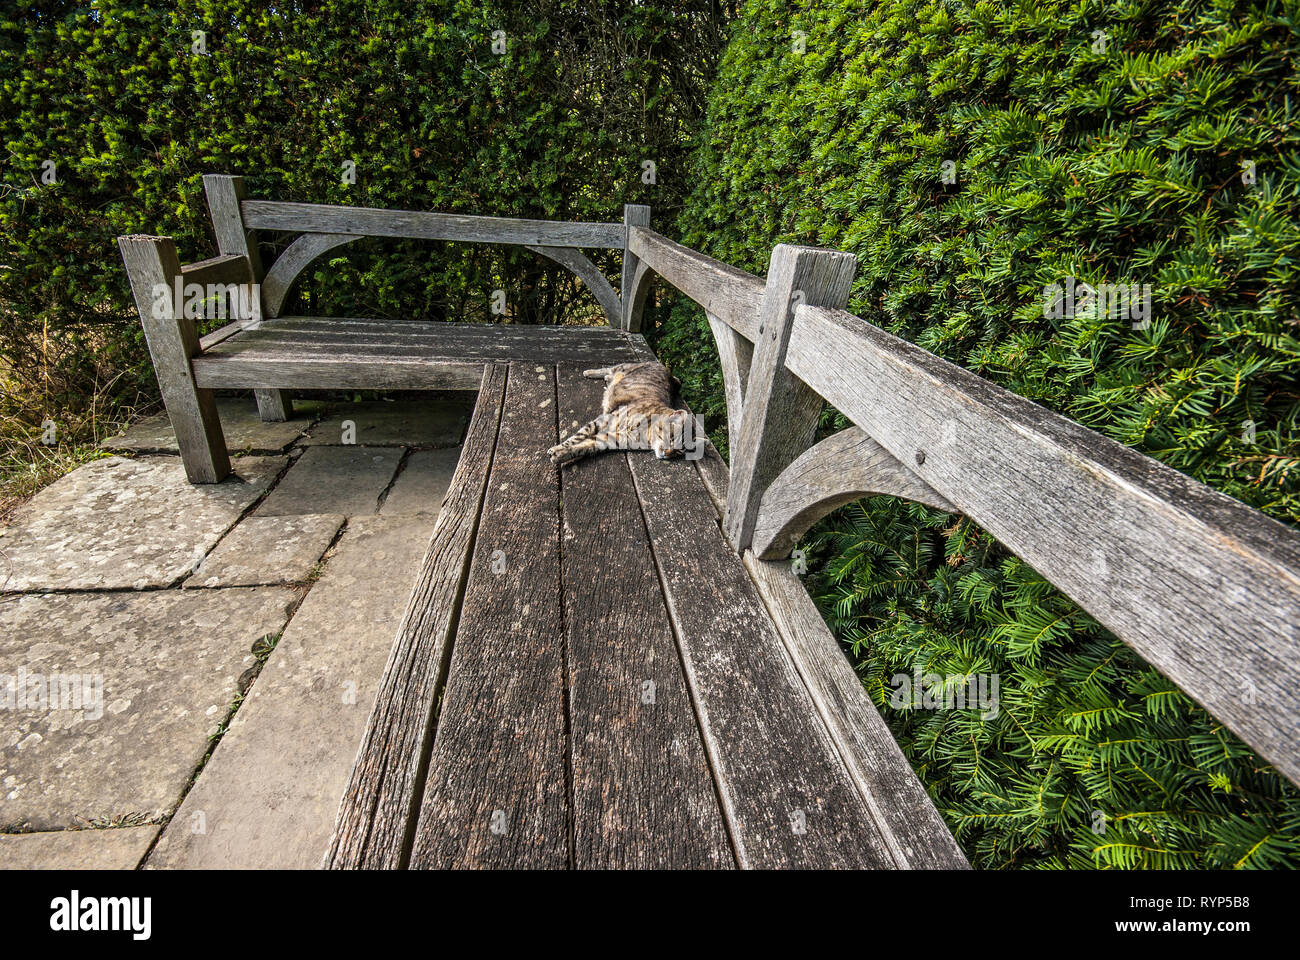 Cat resting on wooden bench by yew hedge, Taxus bccata, at Great Dixter garden - Stock Image